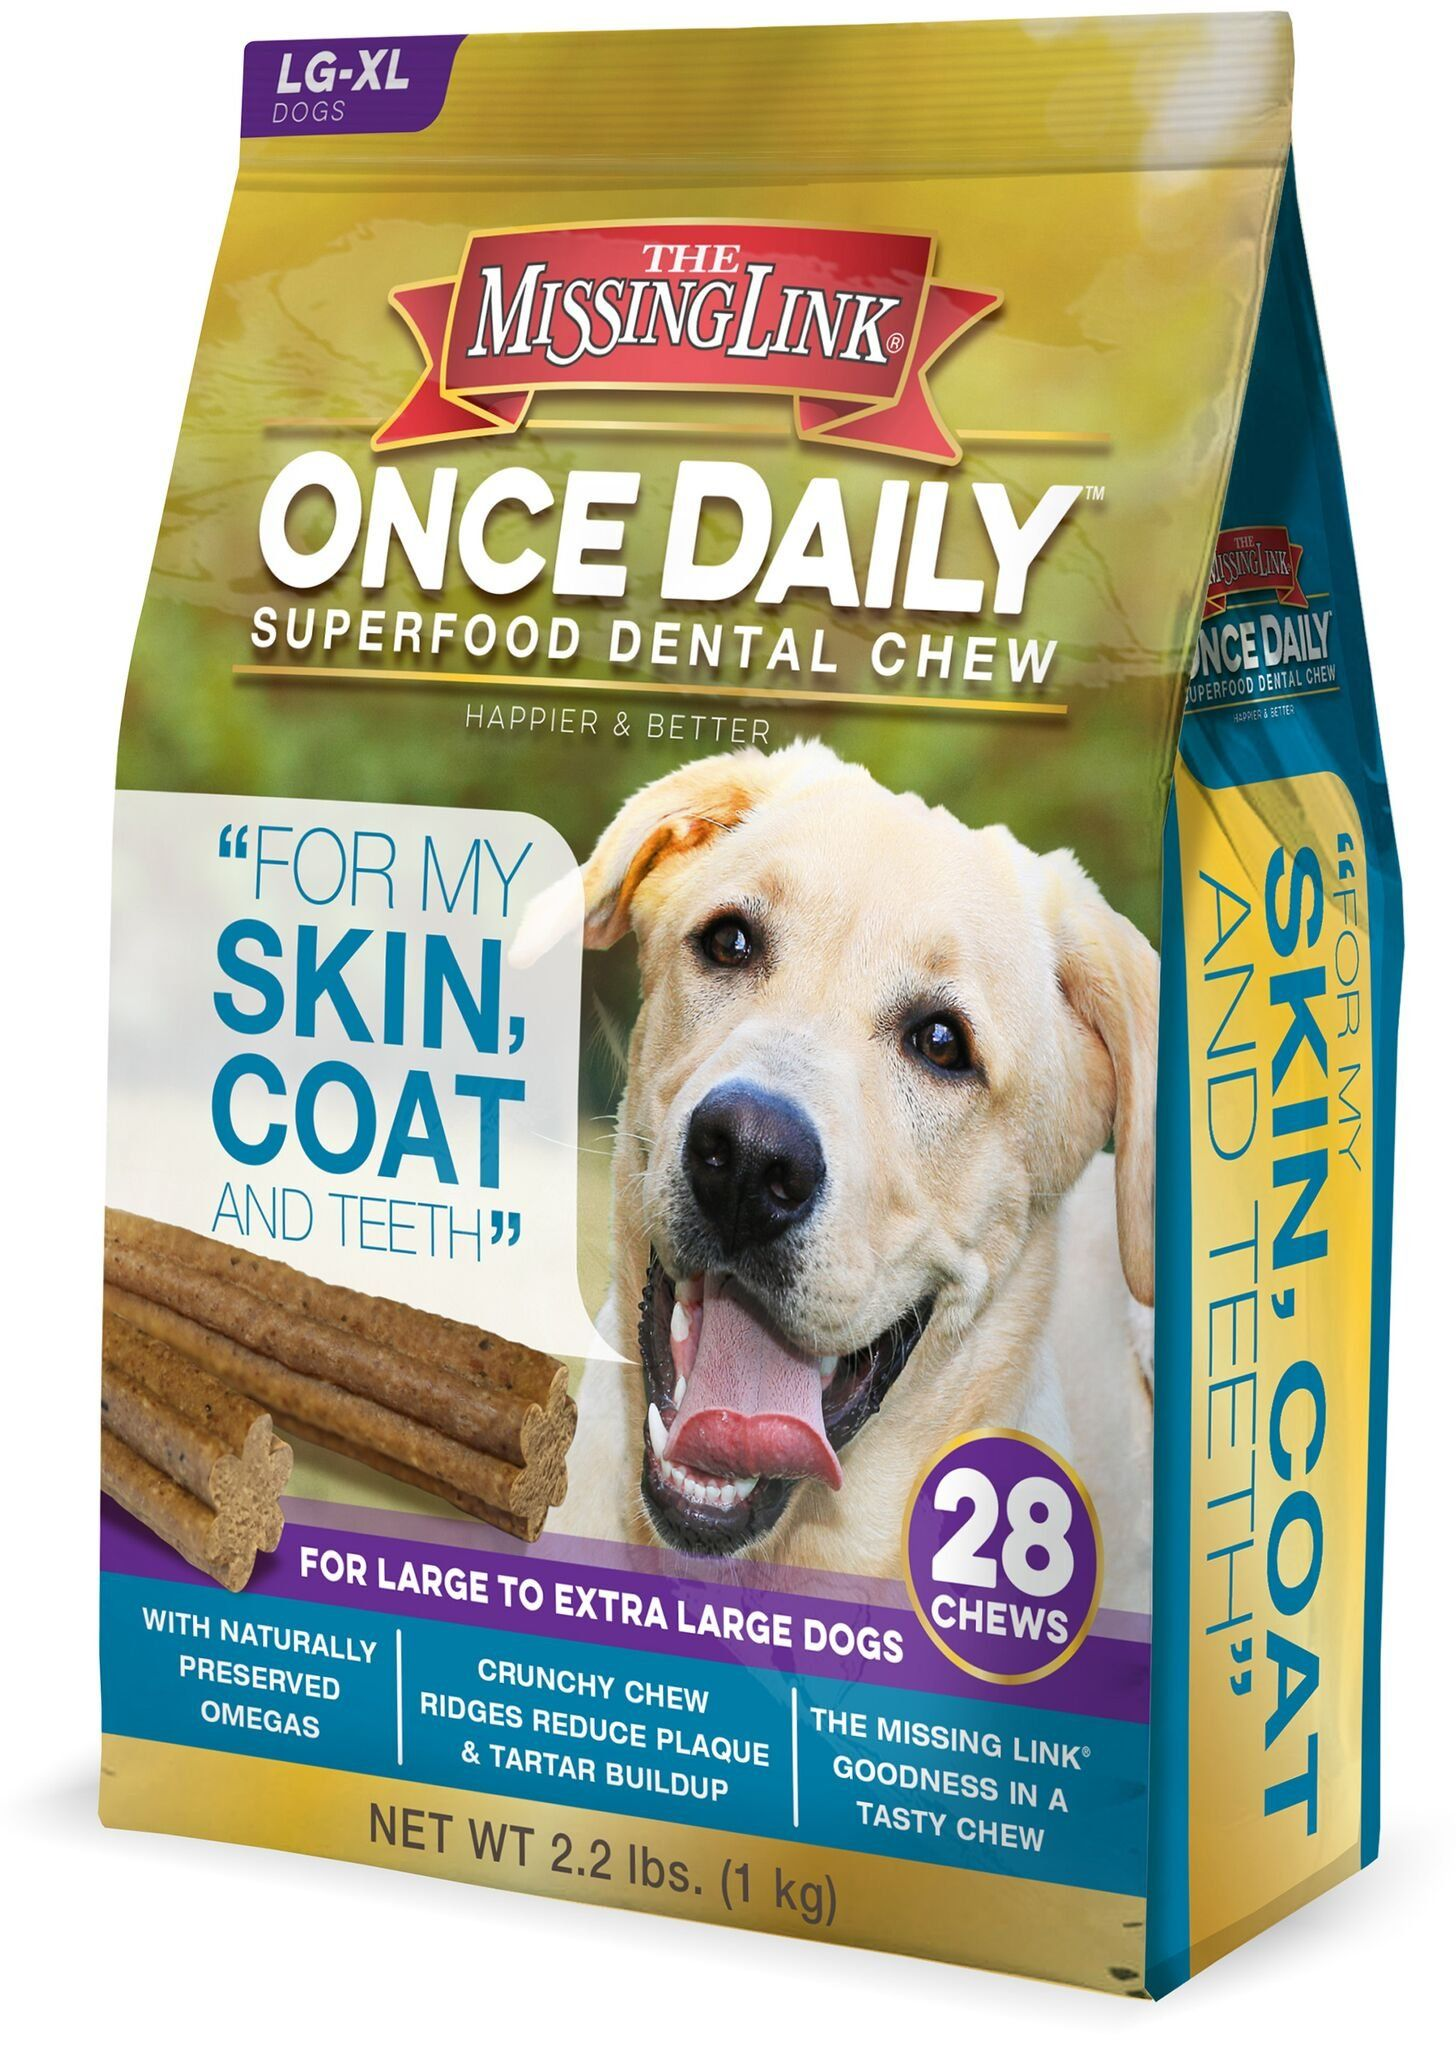 The Missing Link Once Daily All Natural Omega Dental Chew Skin